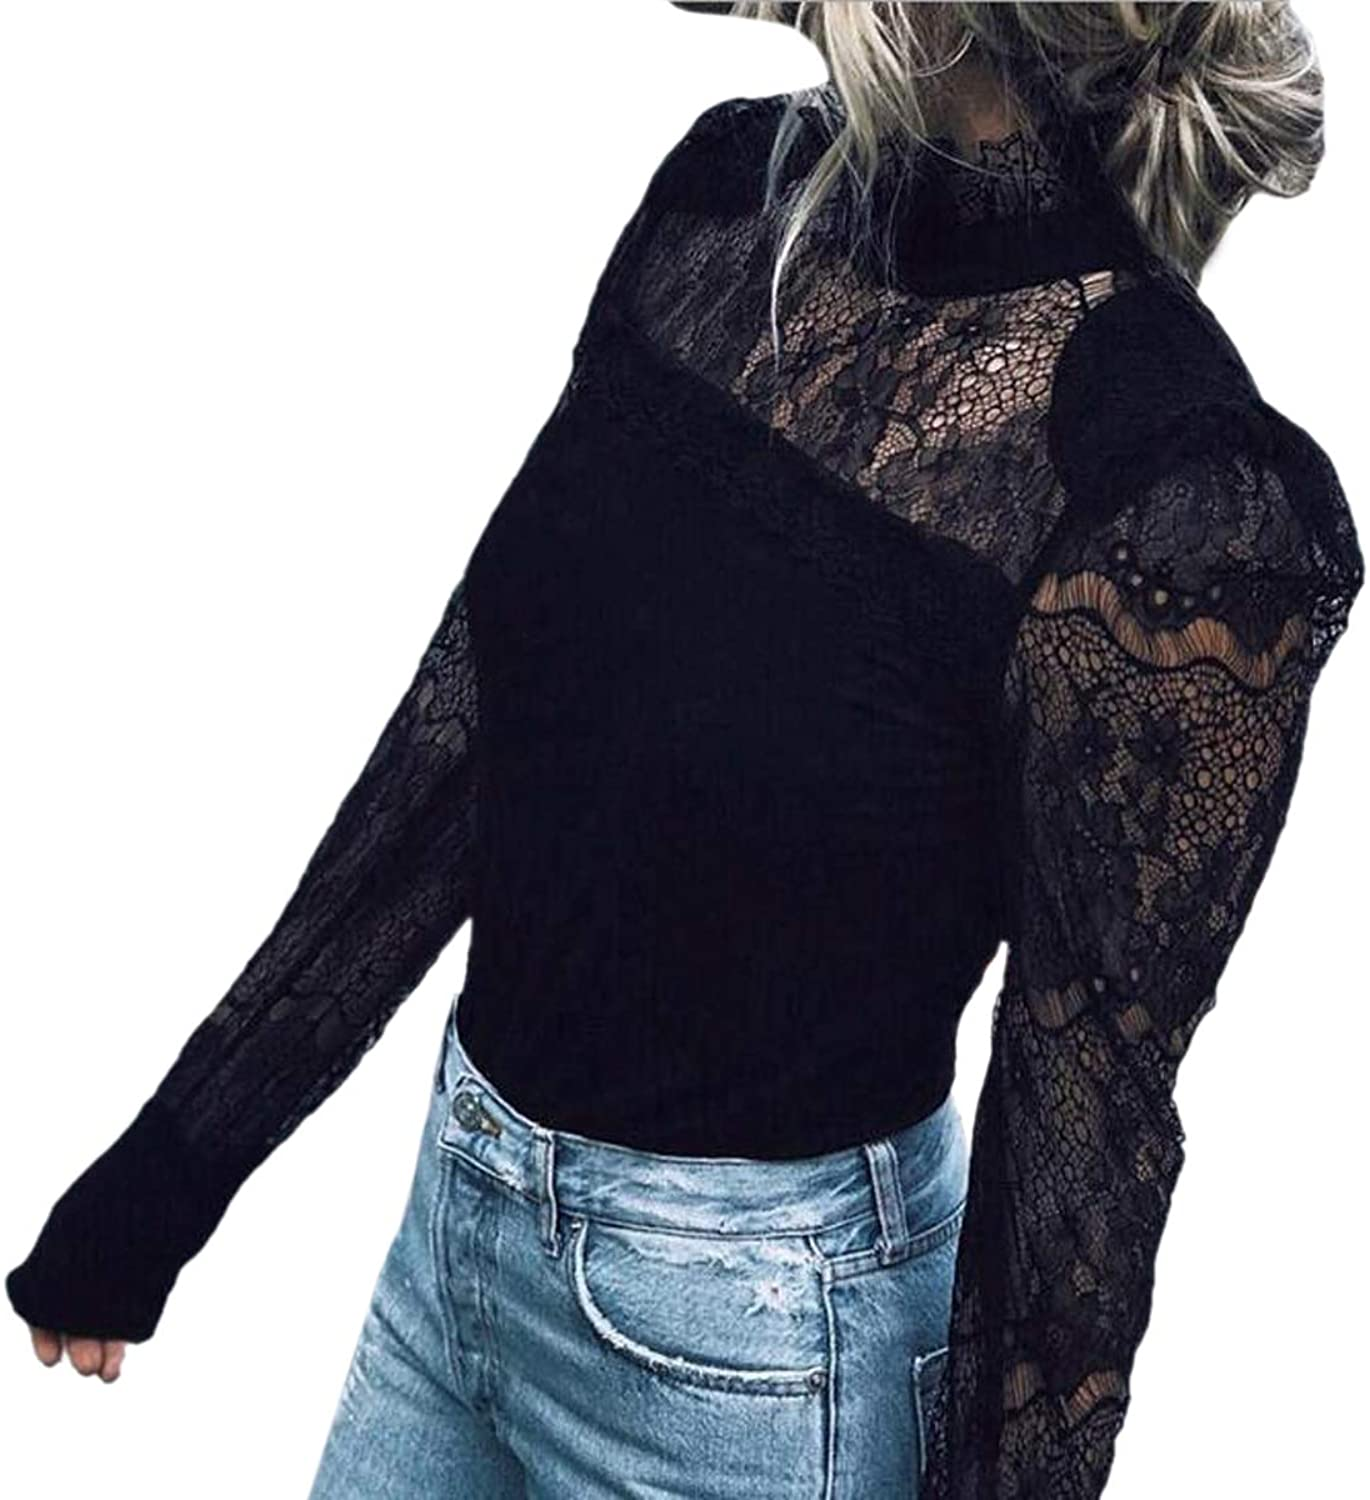 Flextiicinax Floral Lace Patchwork Sheer Mock Neck Shirt Bodycon Long Sleeve Women Blouse